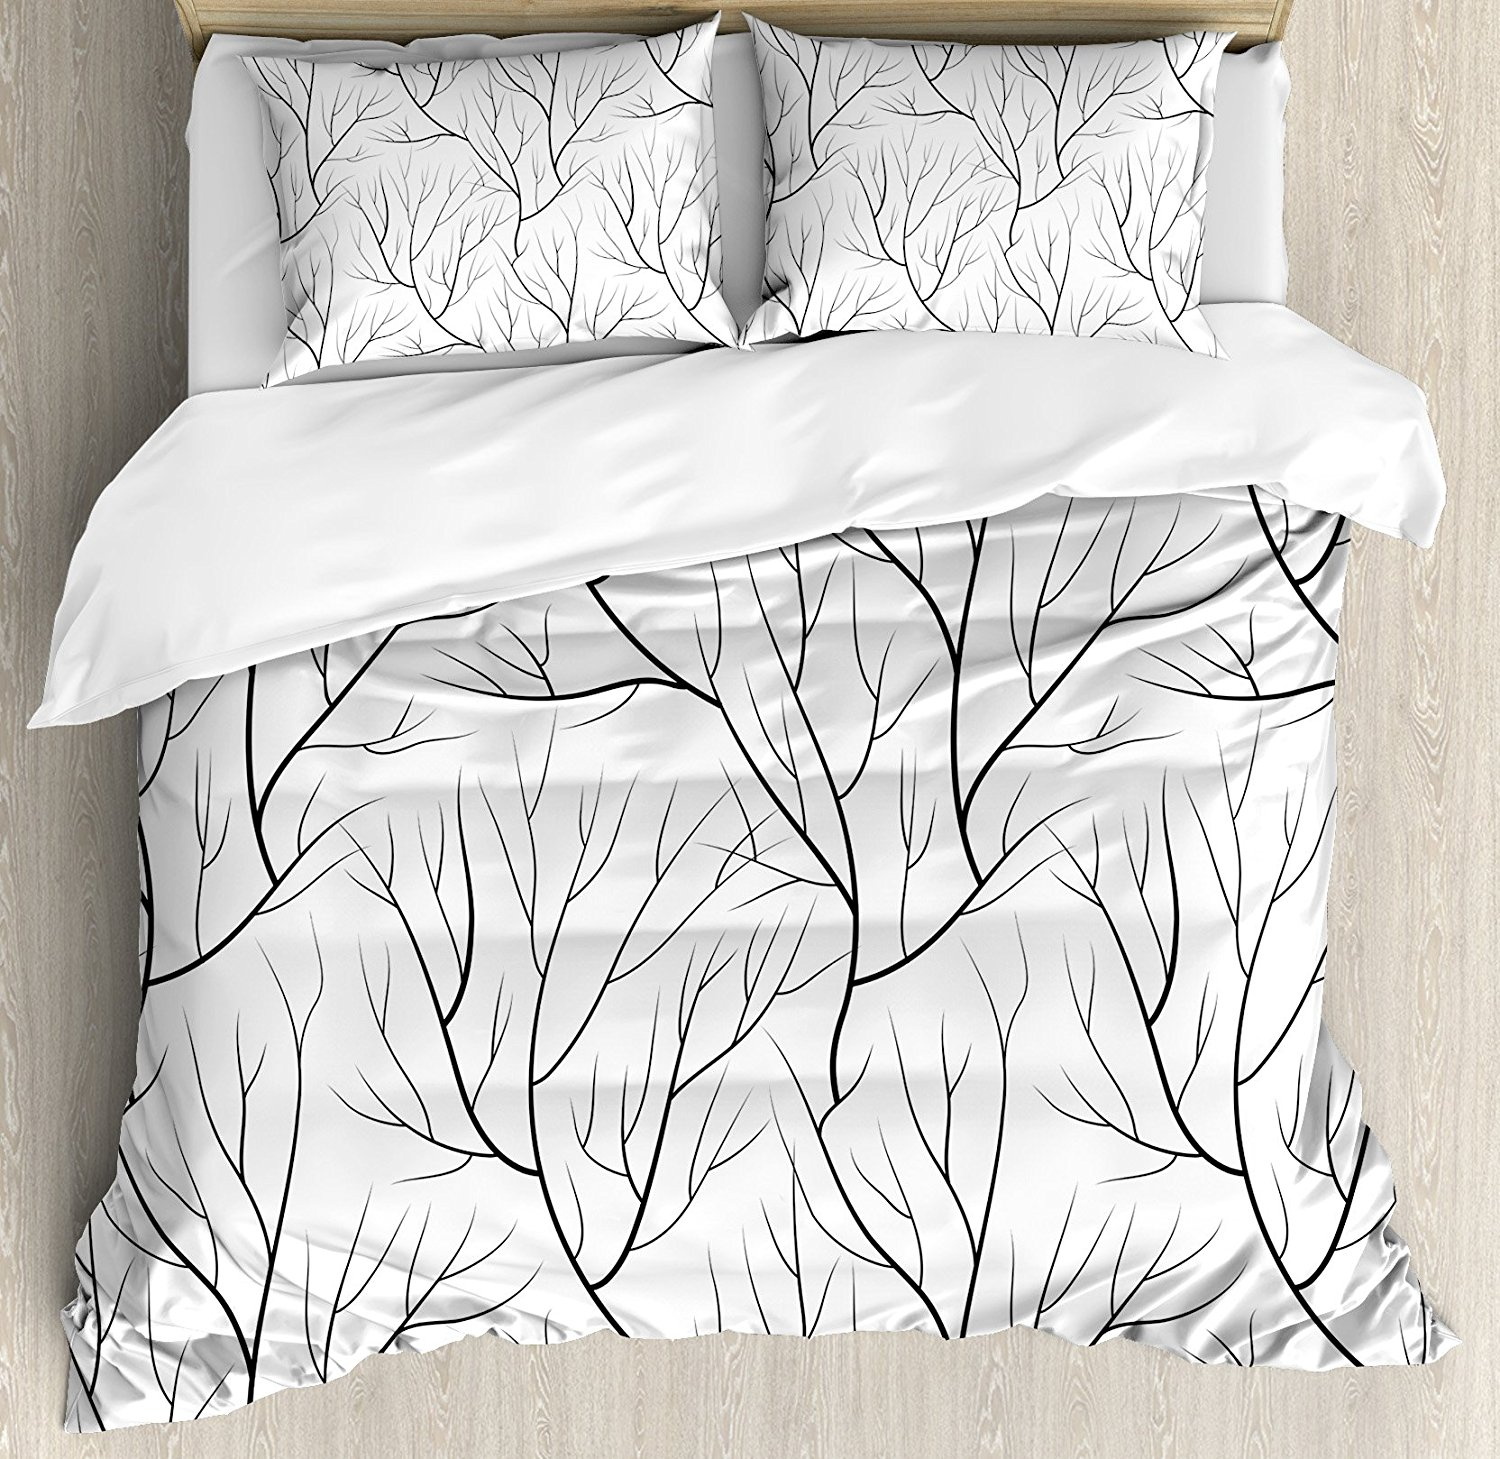 Winter Duvet Cover Set Winter Tree without Leaves Nature Theme Delicate Branches Pattern Japanese Style Bedding Set White BlackWinter Duvet Cover Set Winter Tree without Leaves Nature Theme Delicate Branches Pattern Japanese Style Bedding Set White Black